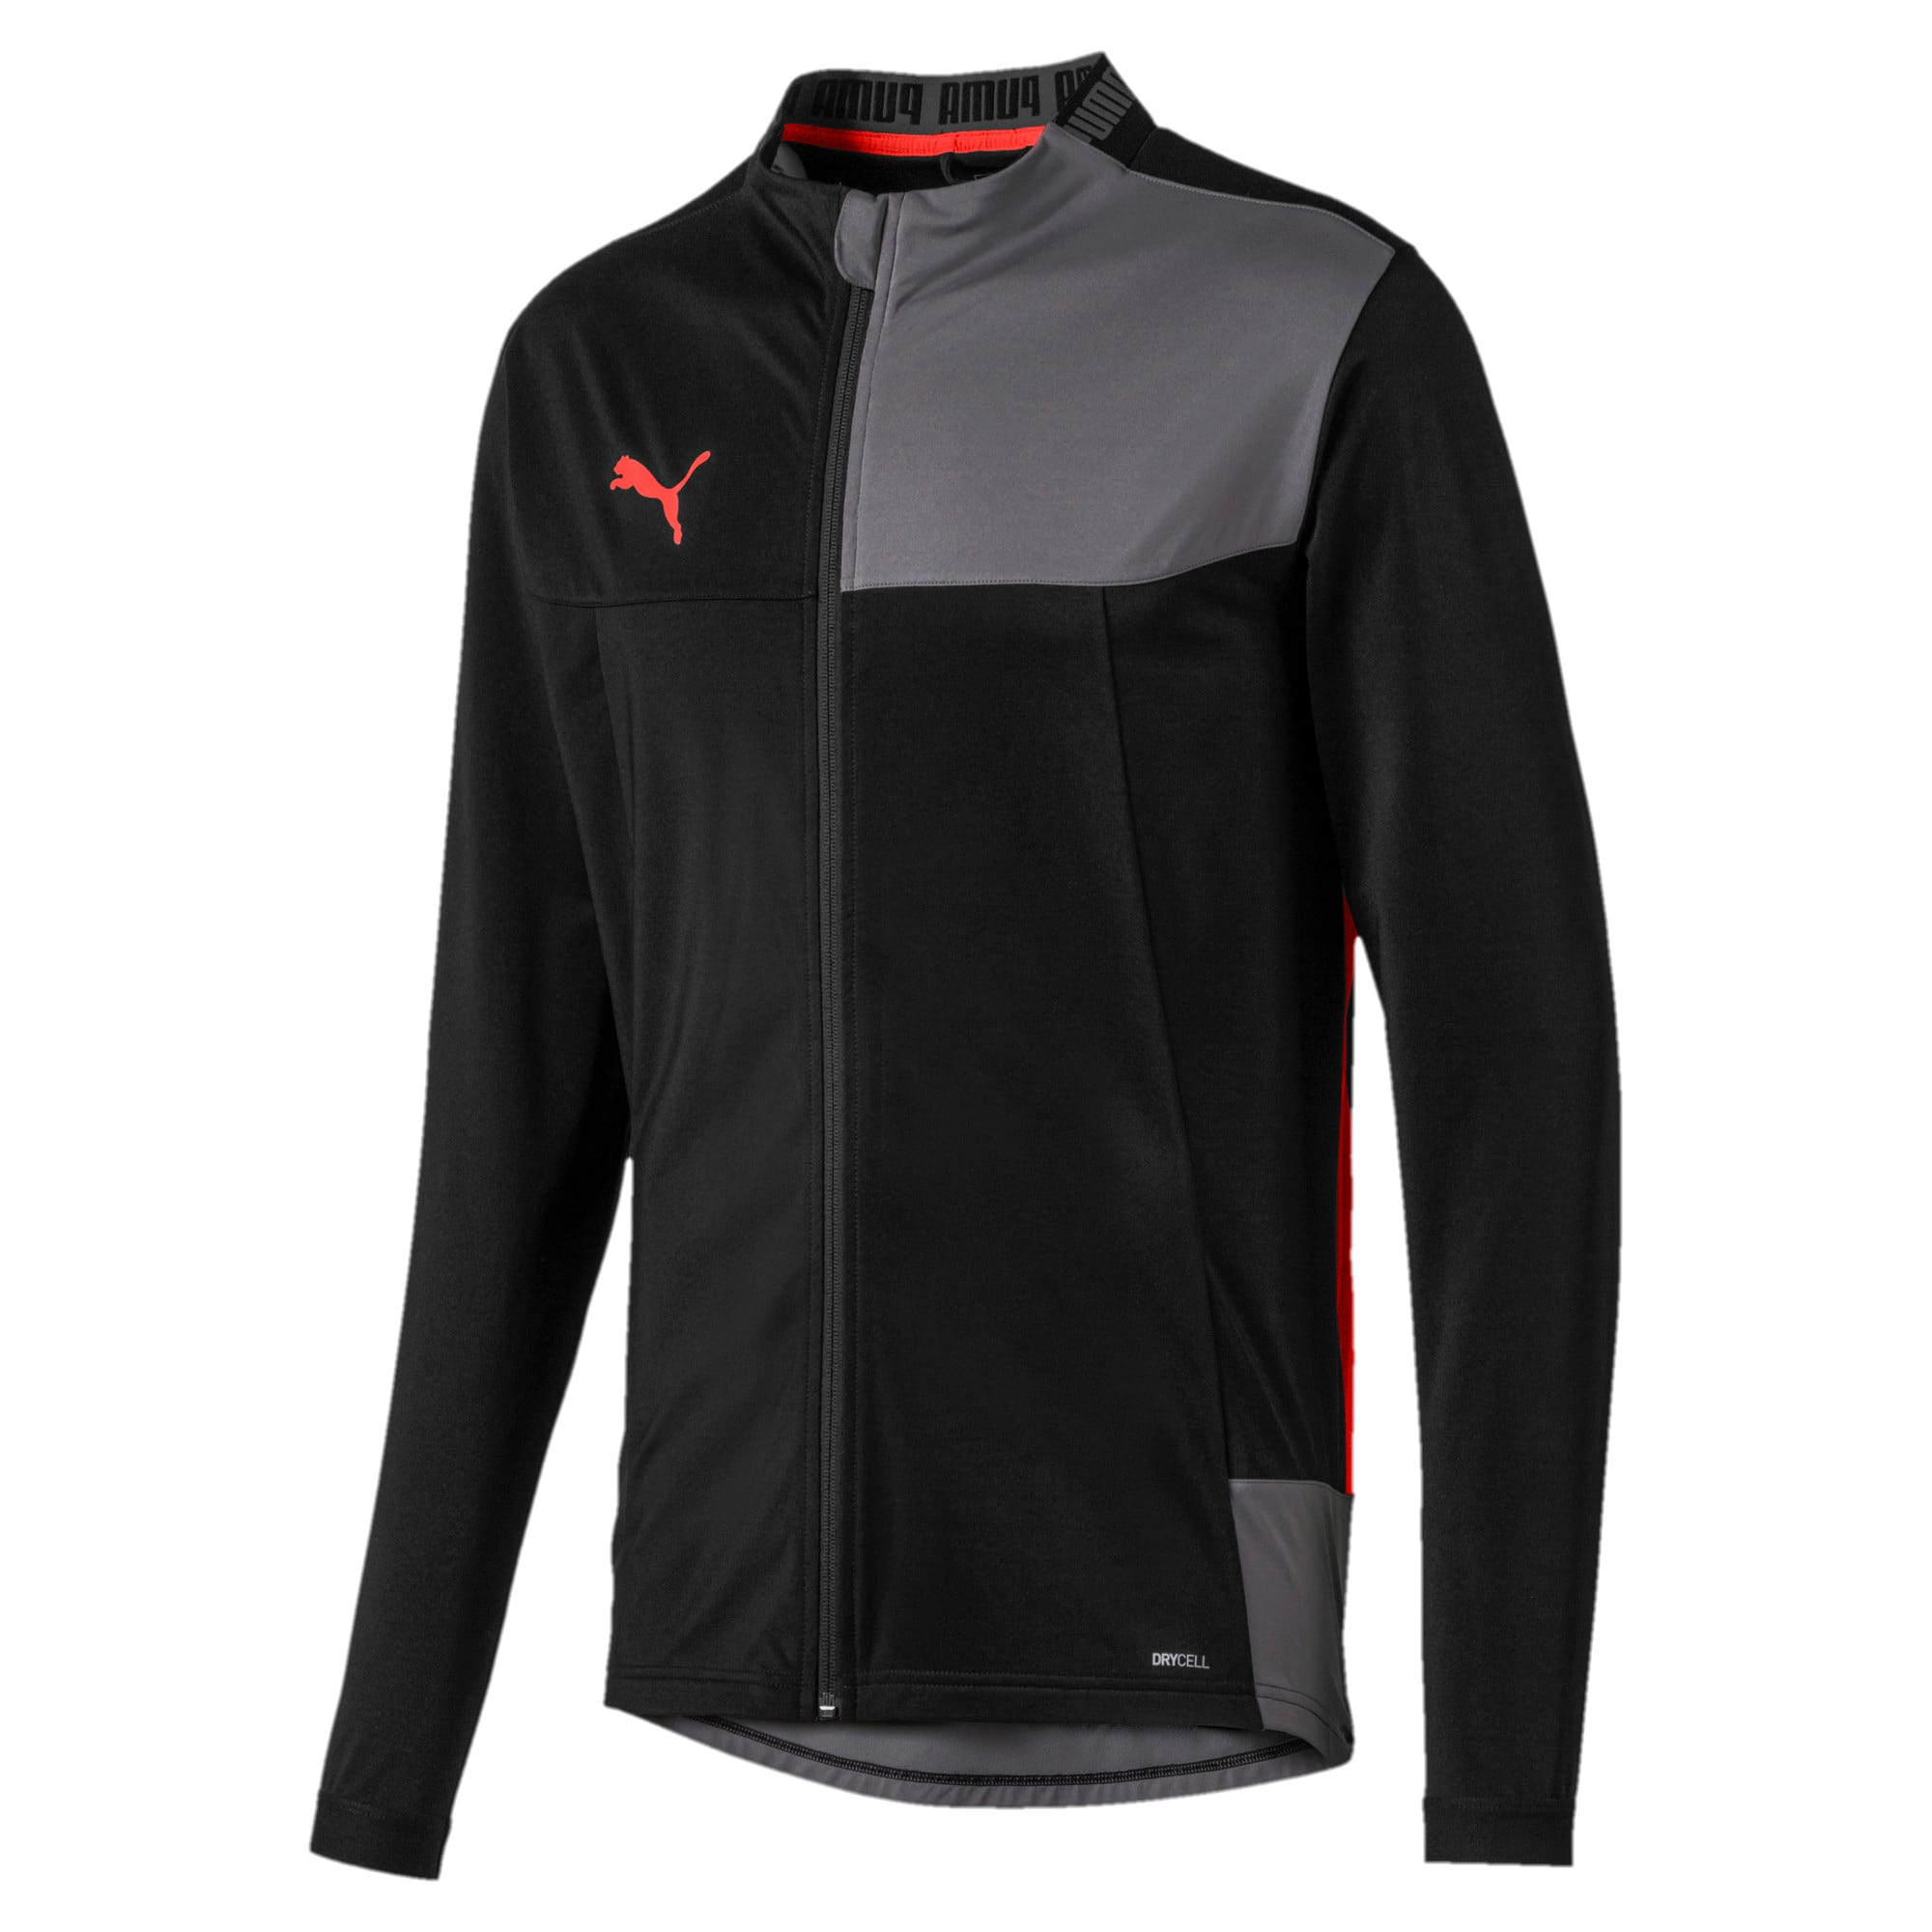 Thumbnail 4 of Trainingsjack voor heren, Puma Black-Nrgy Red, medium